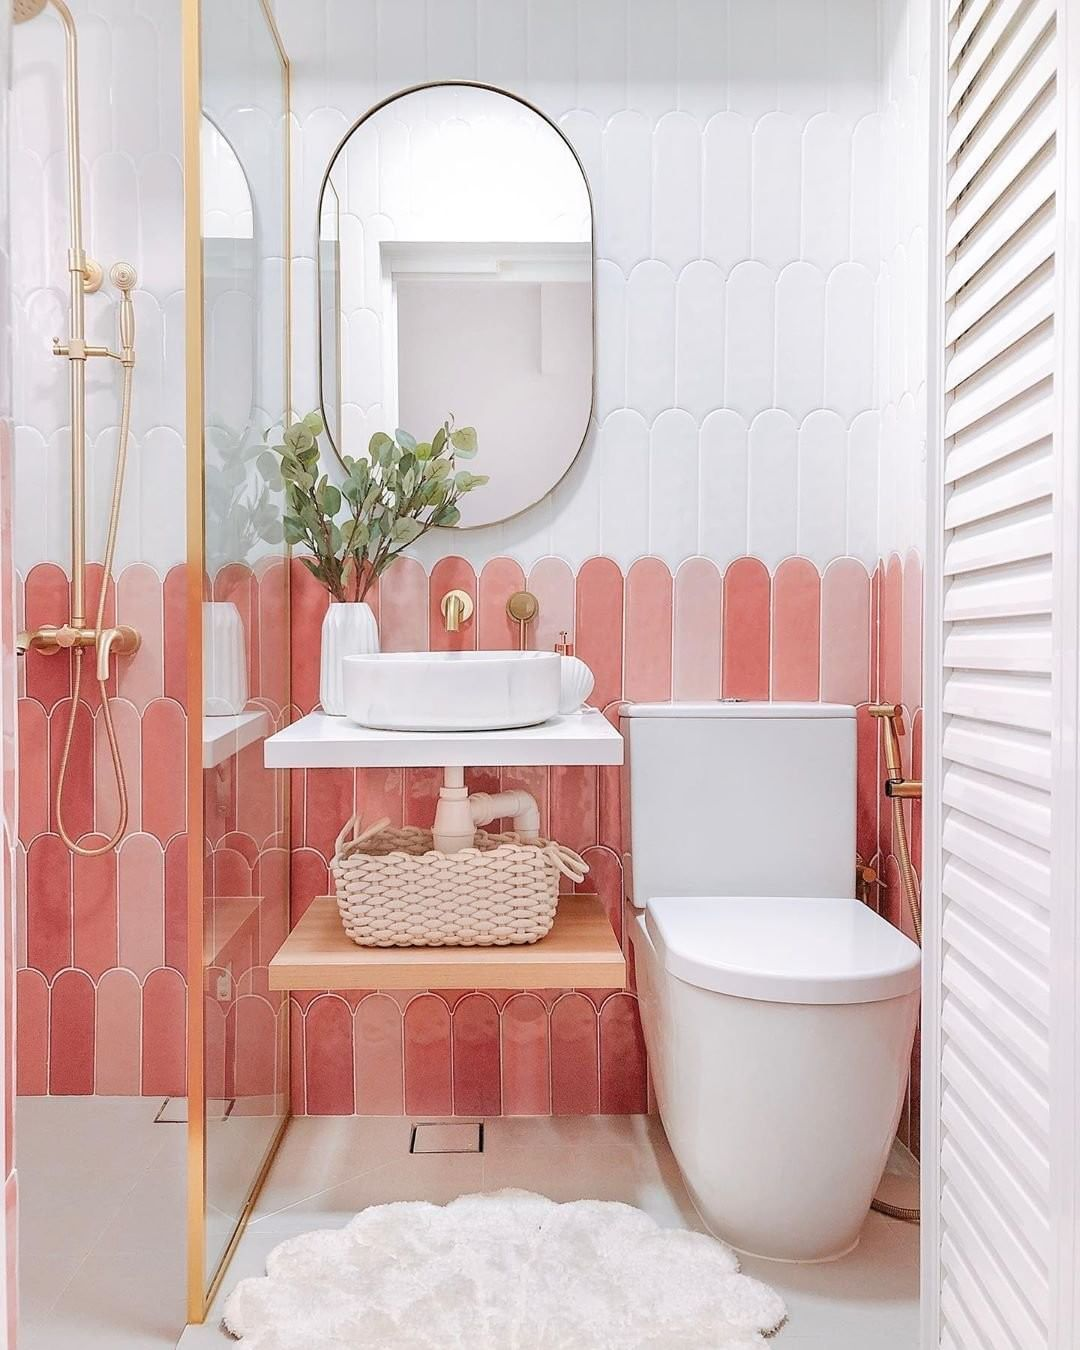 This Tiny Bathroom Is Giving Us All The Positive Monday Morning Energy We Need Design Houseofcha In 2020 Vibrant Bathroom Contemporary Bathroom Tiles Tiny Bathroom